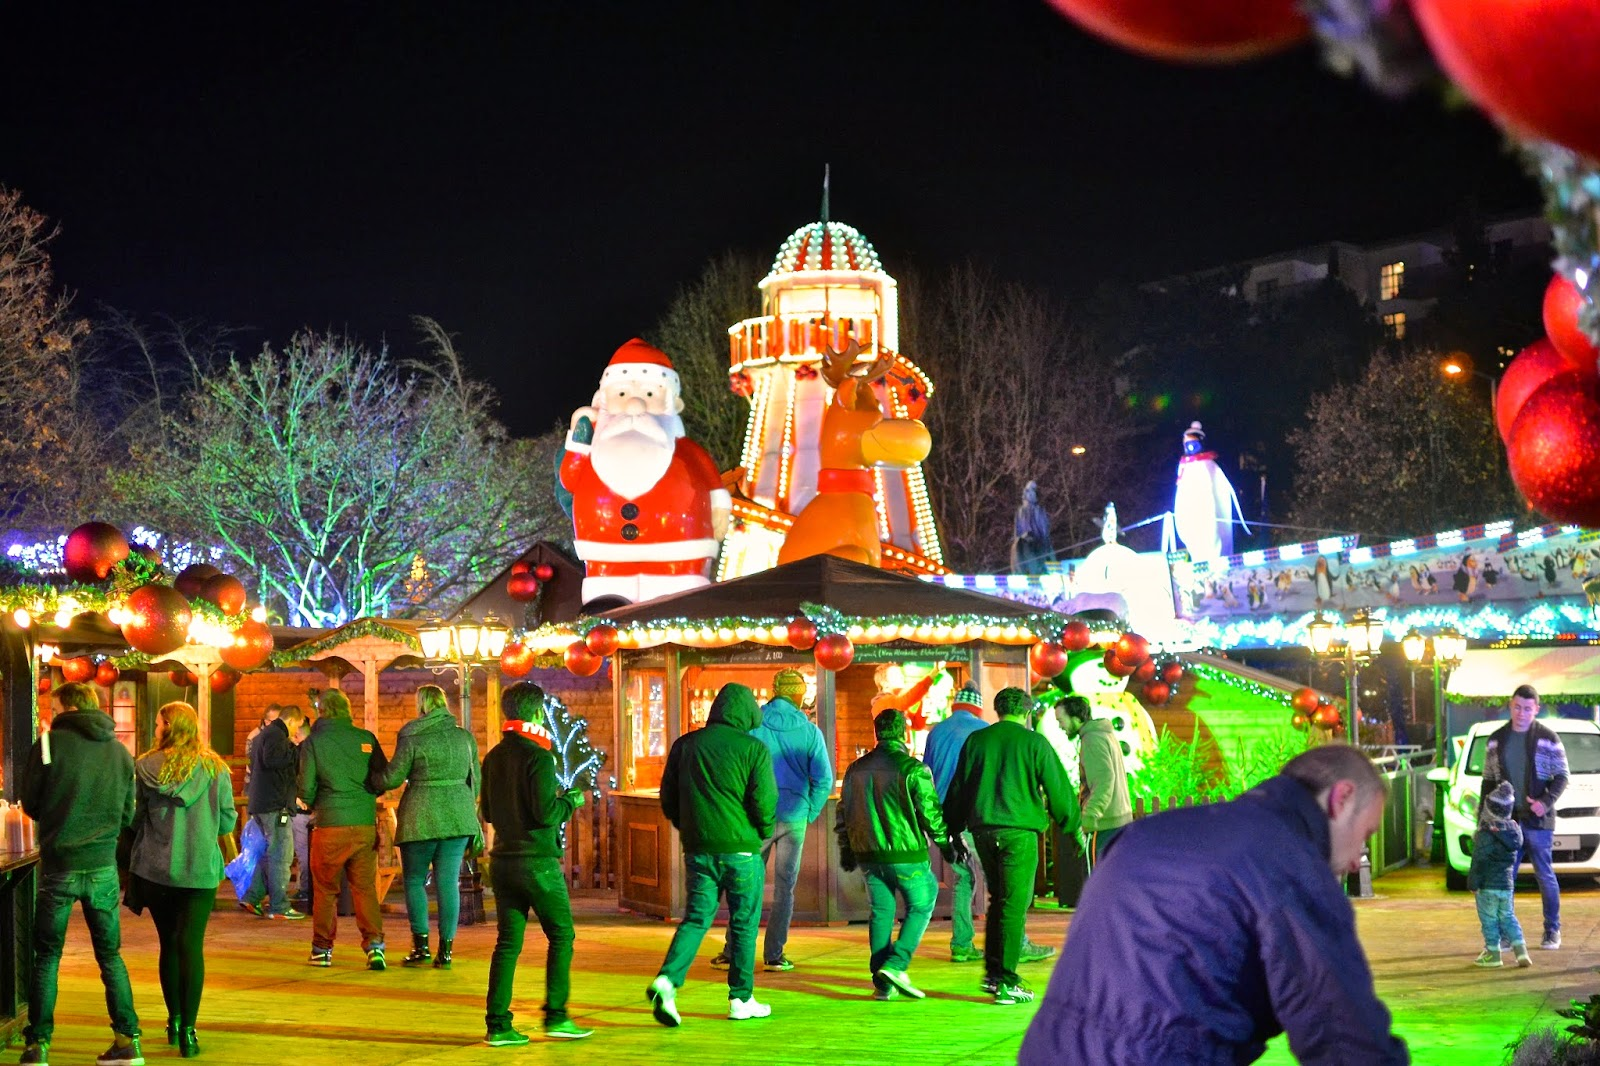 Winter Wonderland in Cardiff